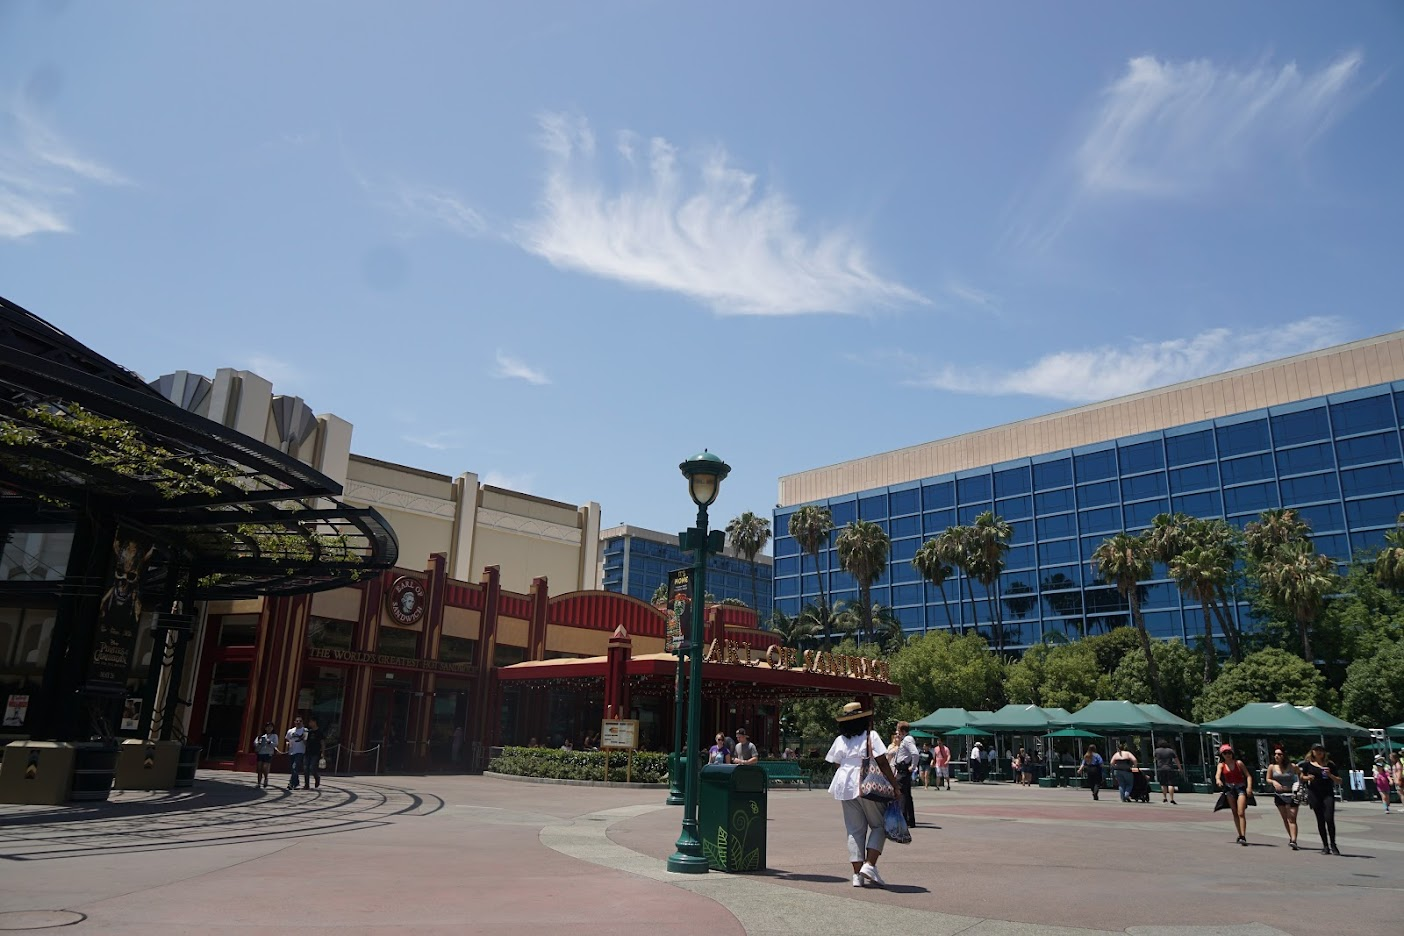 Disneyland Downtown Anaheim